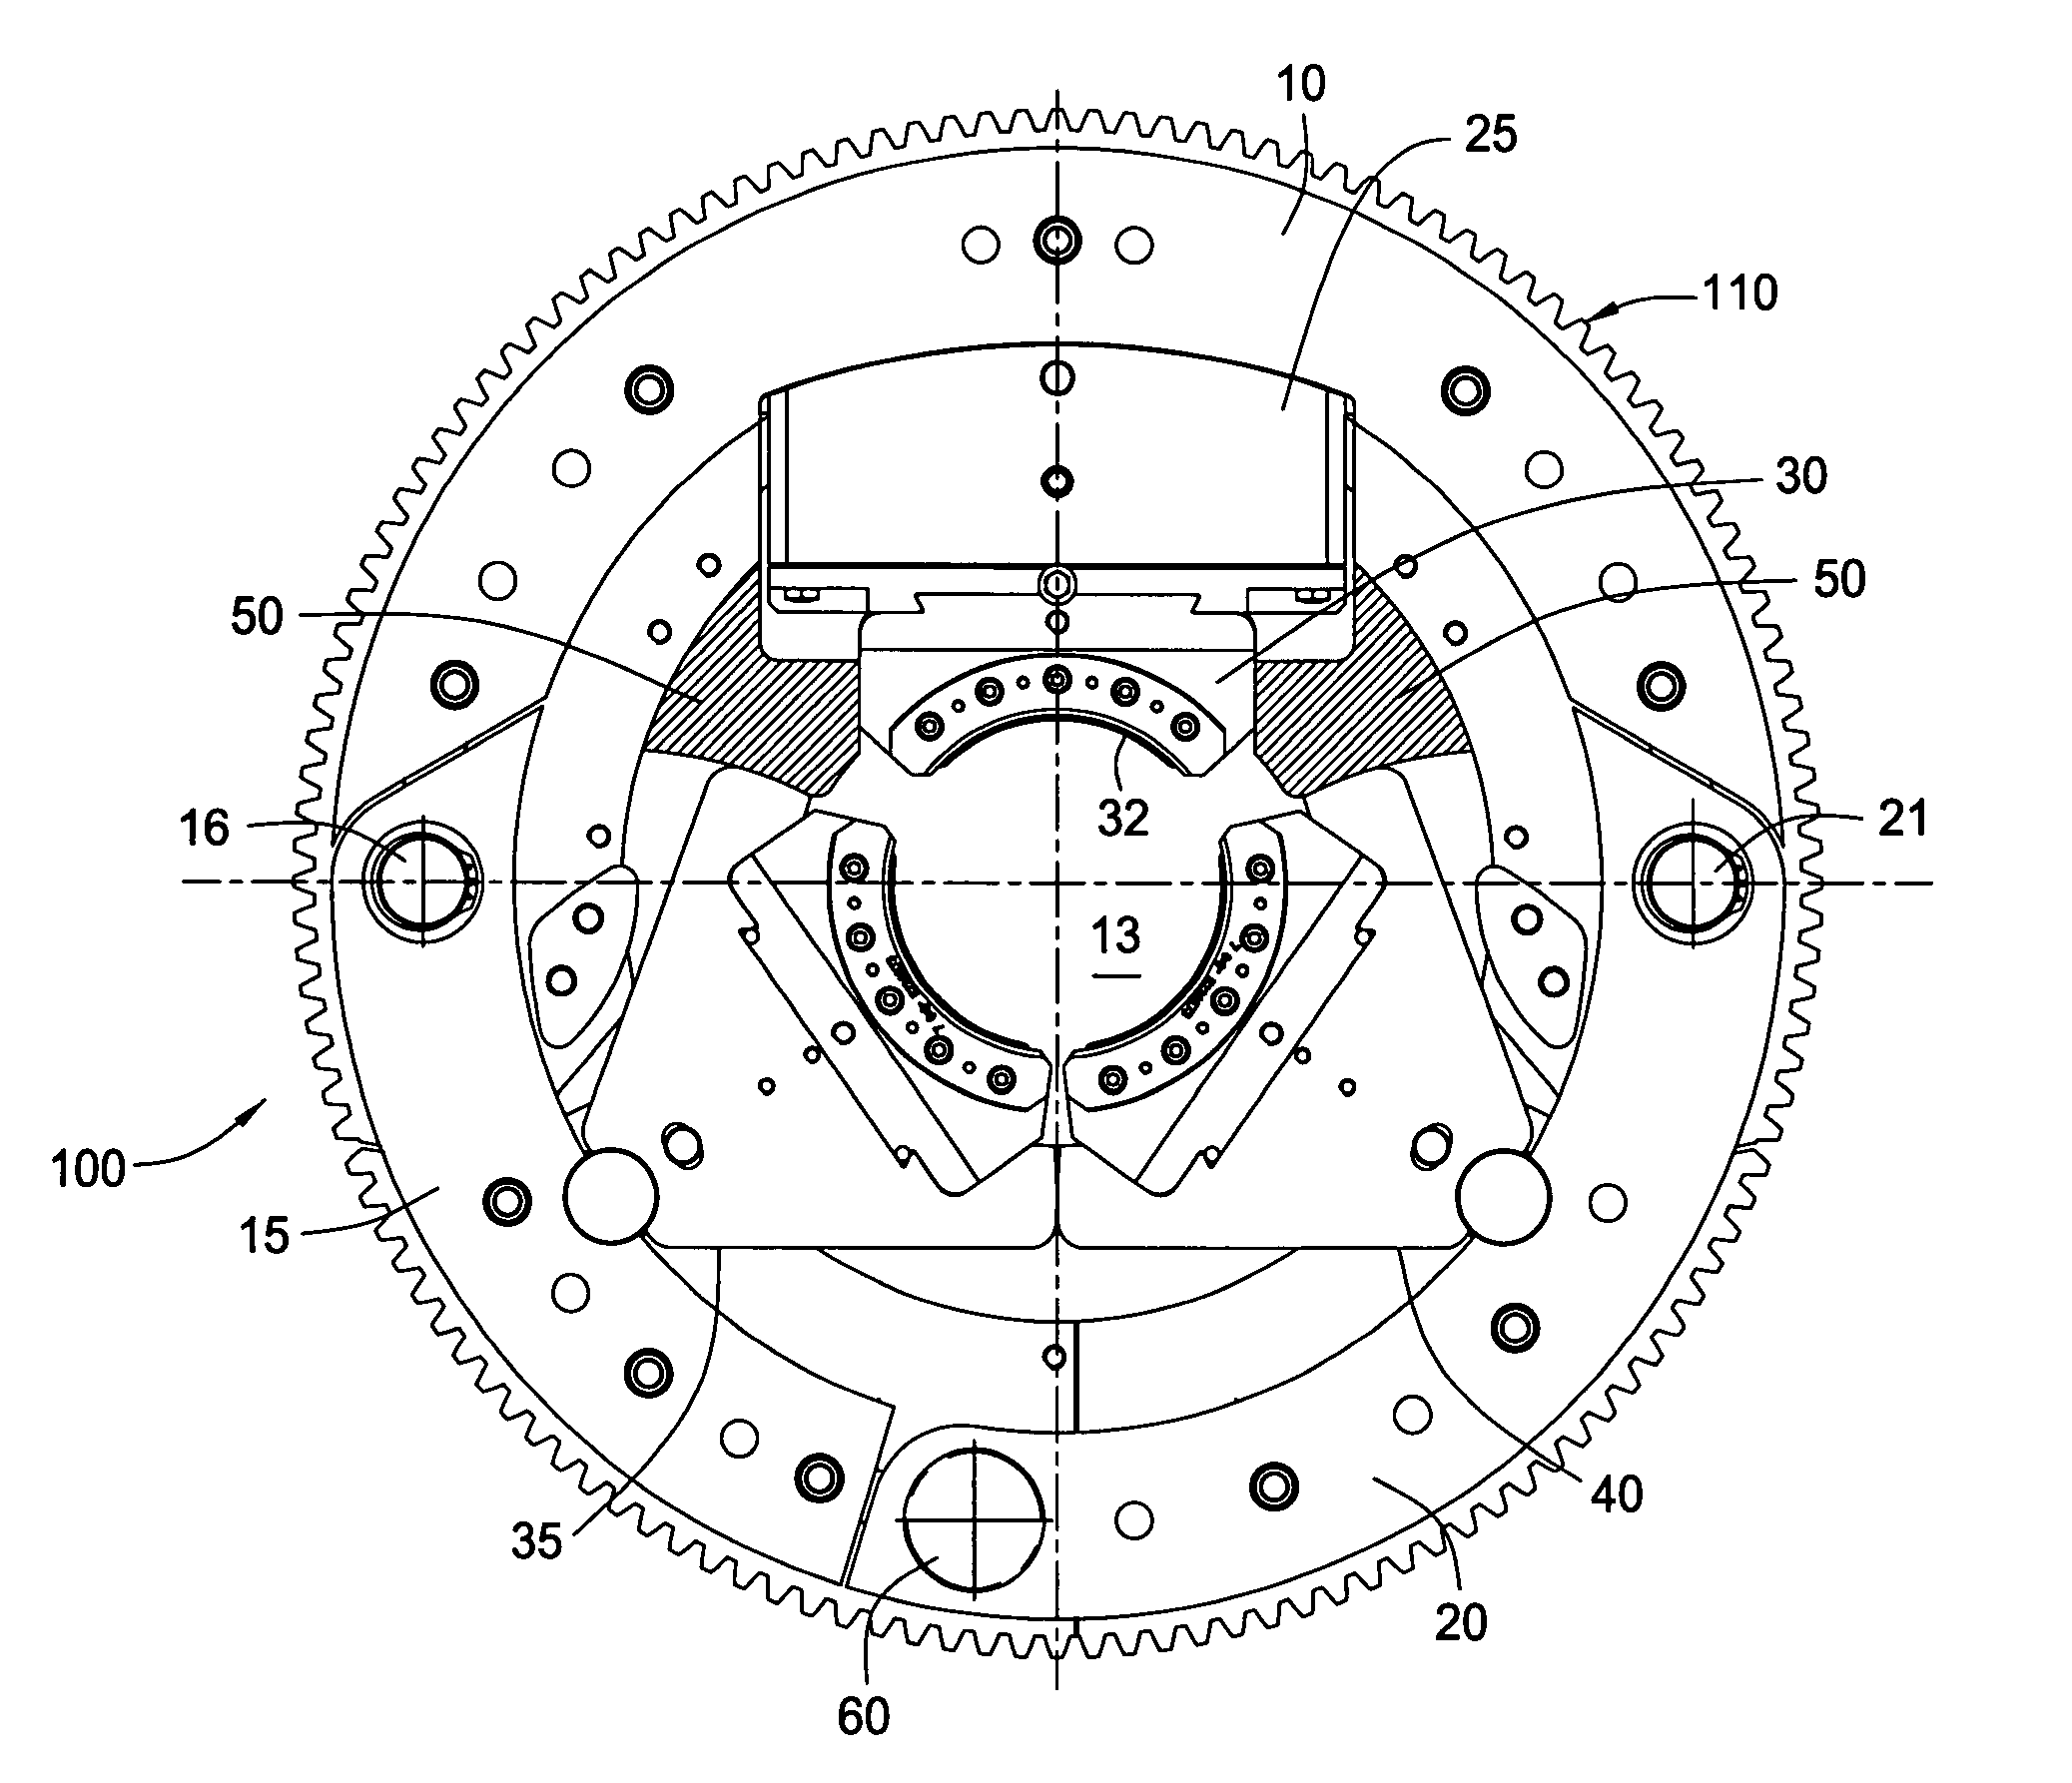 Marten Decker Load Indicator : Patent us gripping system for a tong google